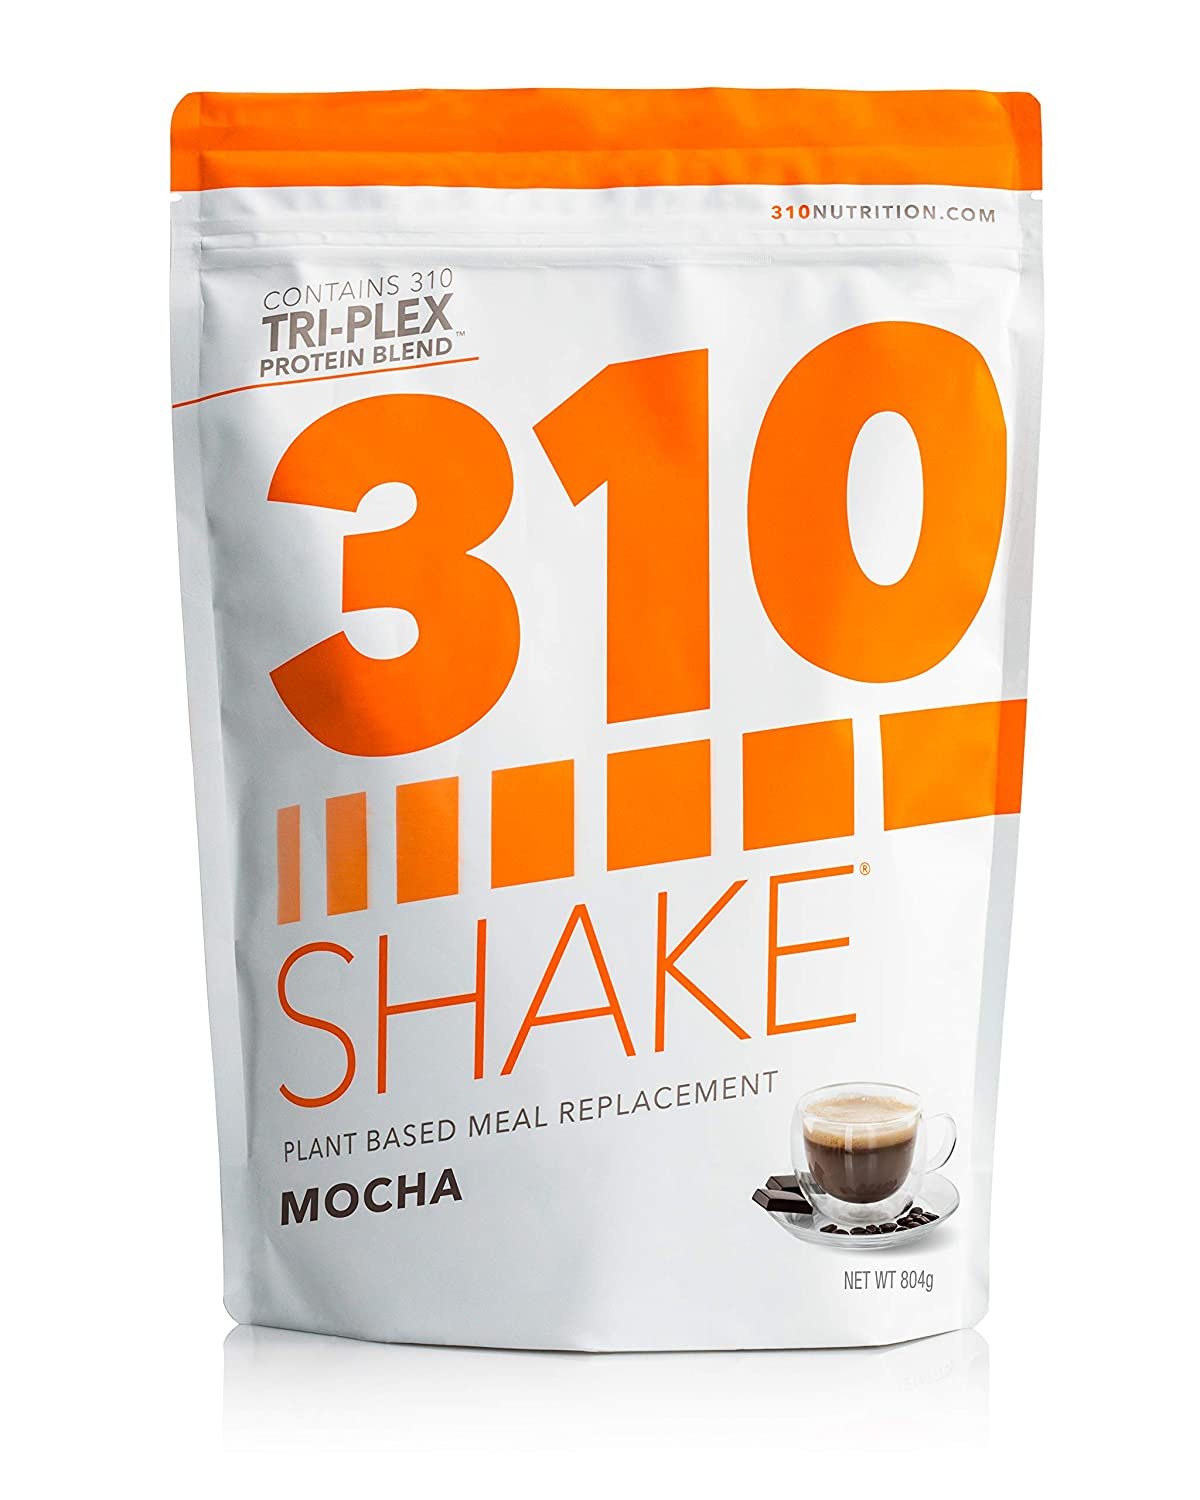 Plant Protein Powder and Meal Replacement Shake | 310 Shakes are Gluten and Dairy Free, Soy Protein and 0g of Sugar | Keto and Paleo Friendly | Includes Recipe eBook | (Mocha, 28 Servings)